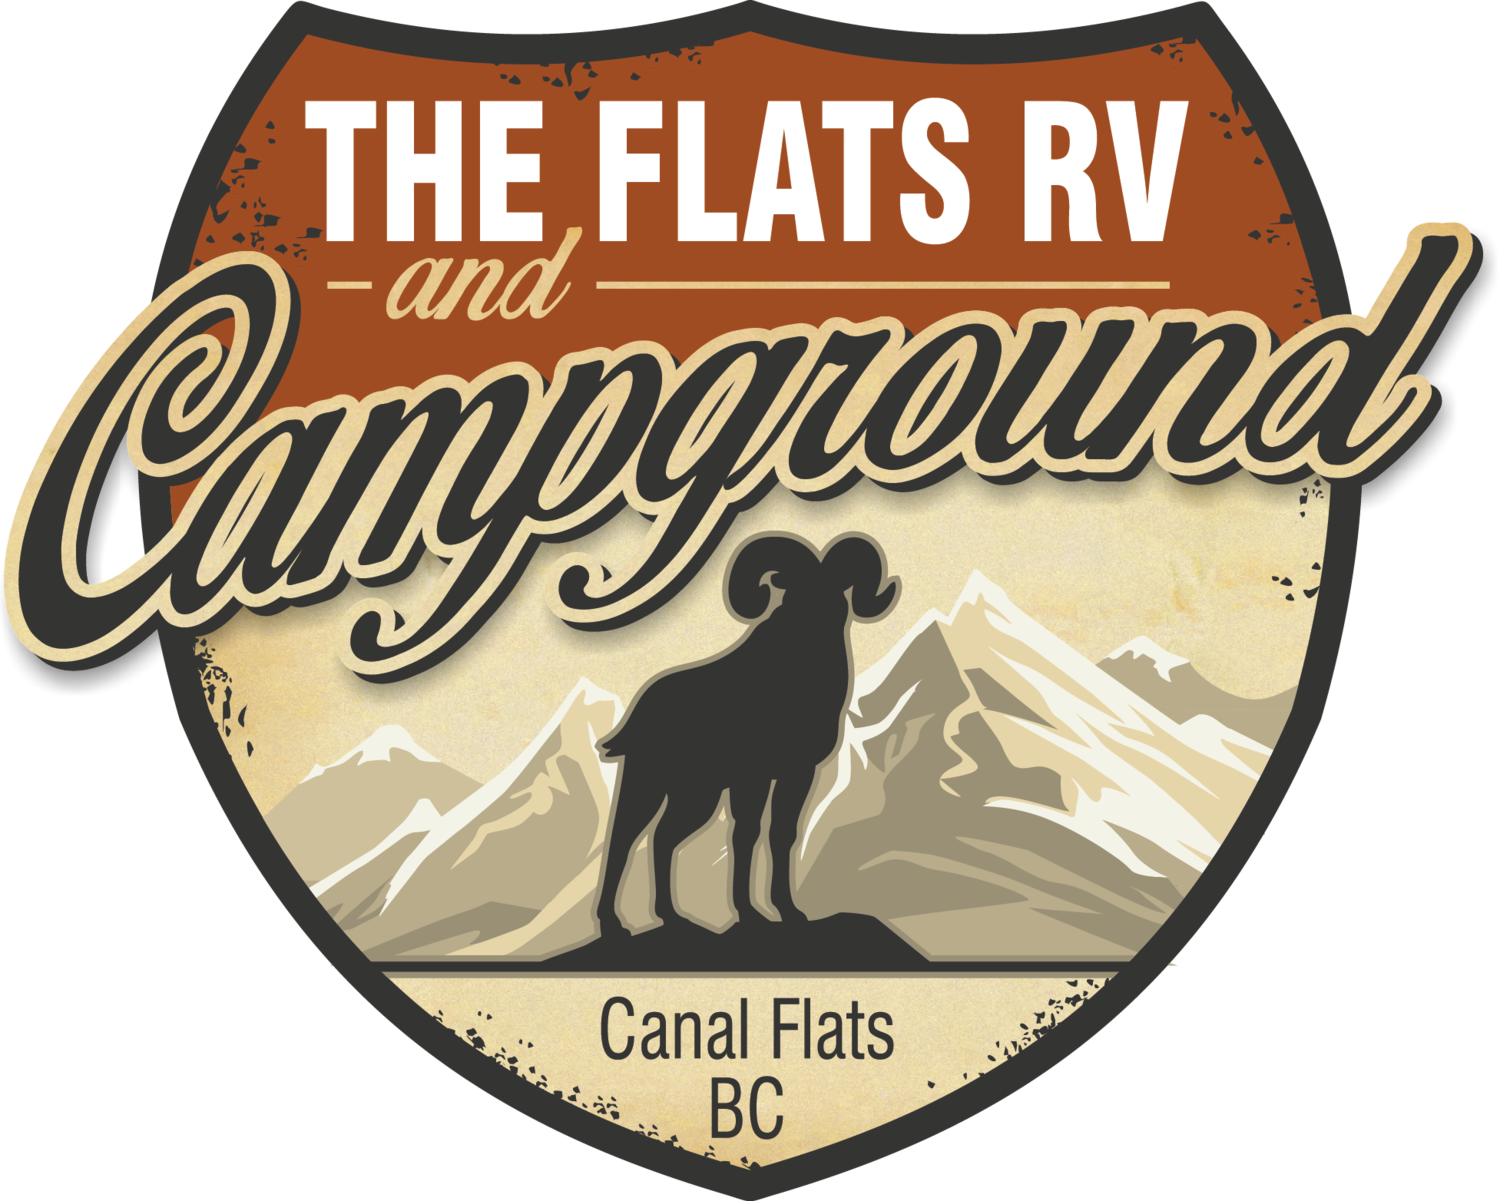 The Flats RV and Campground